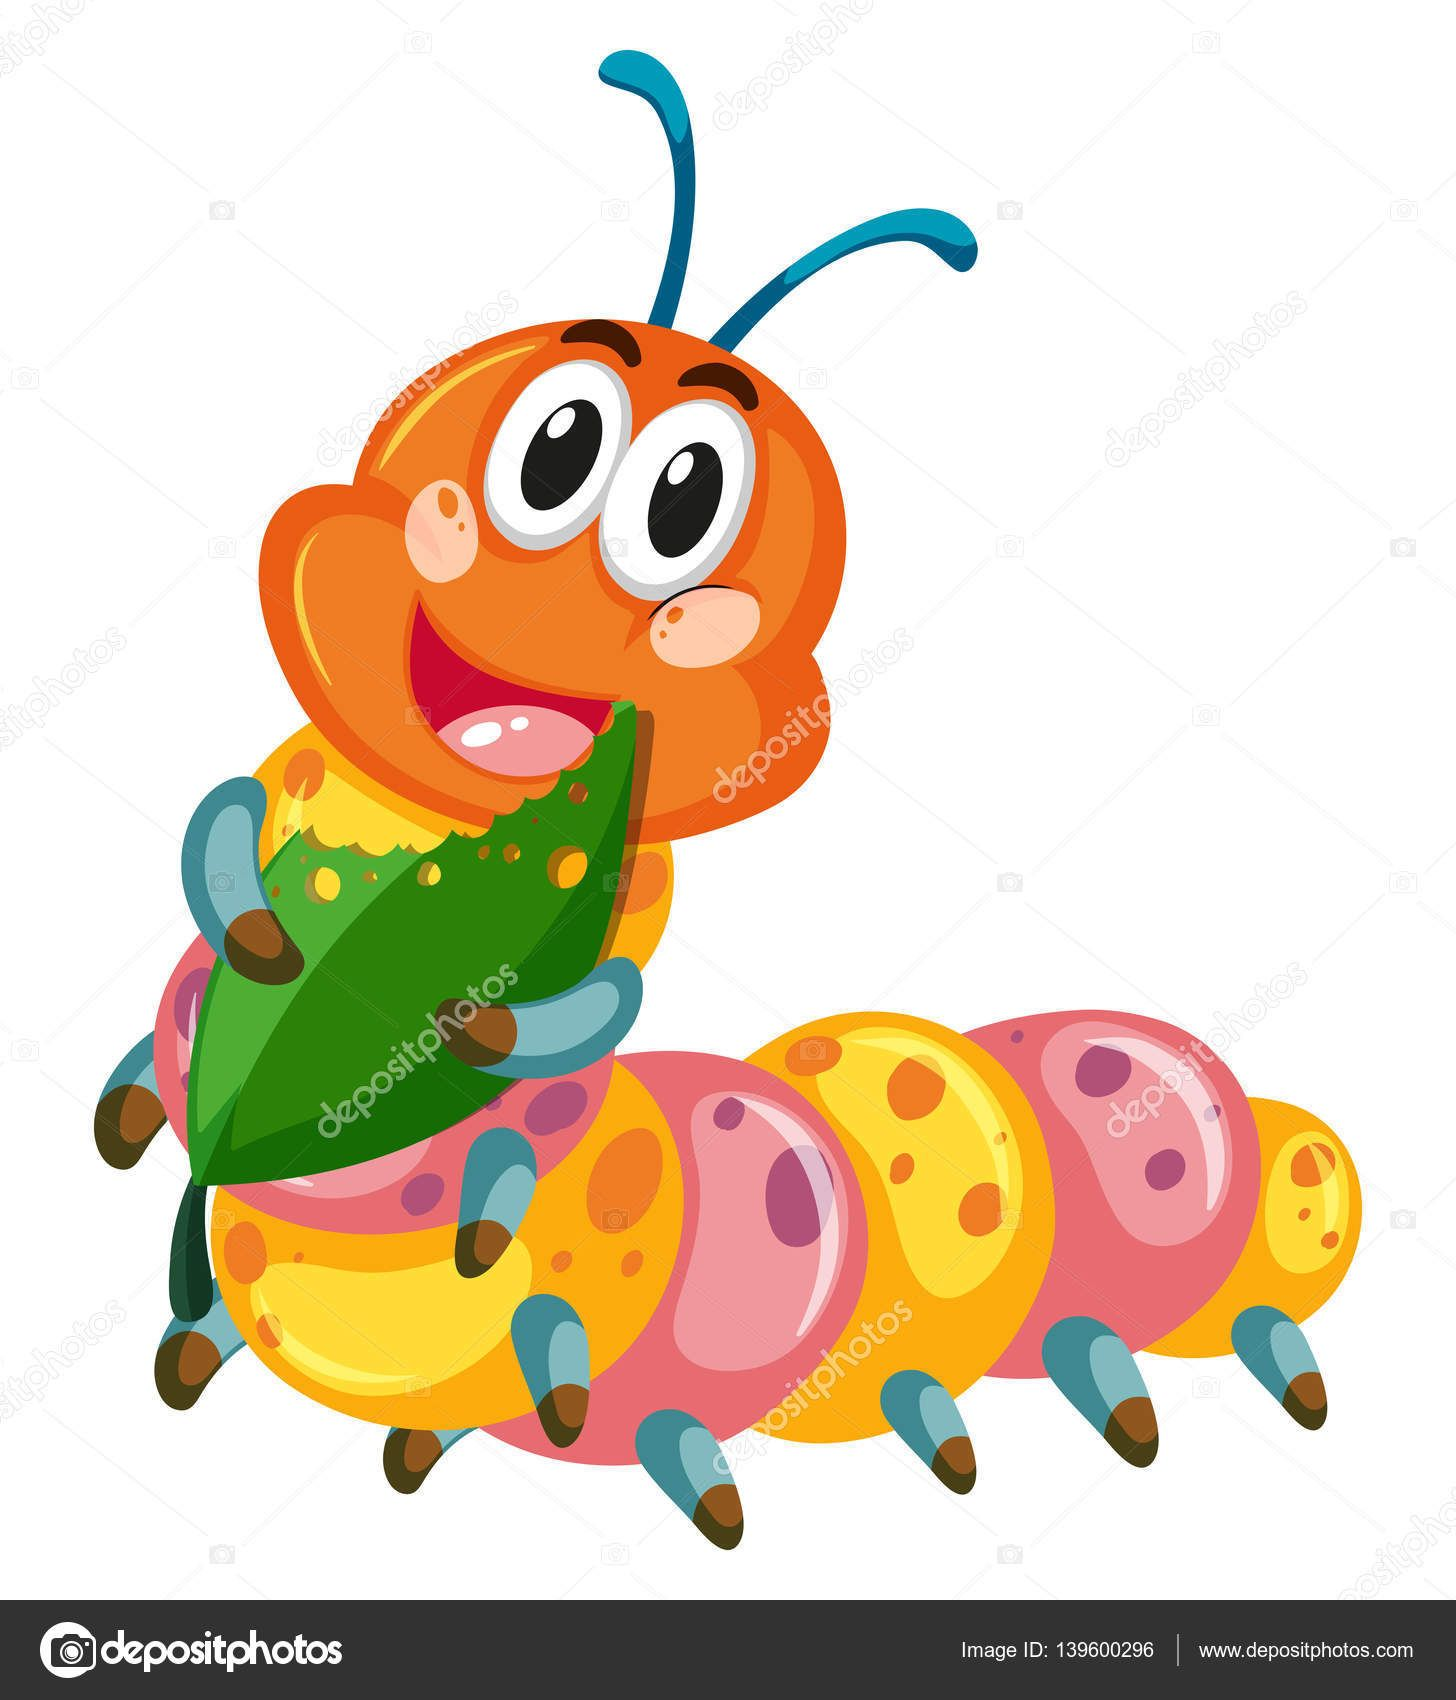 Image result for caterpillar eating leaf clipart.